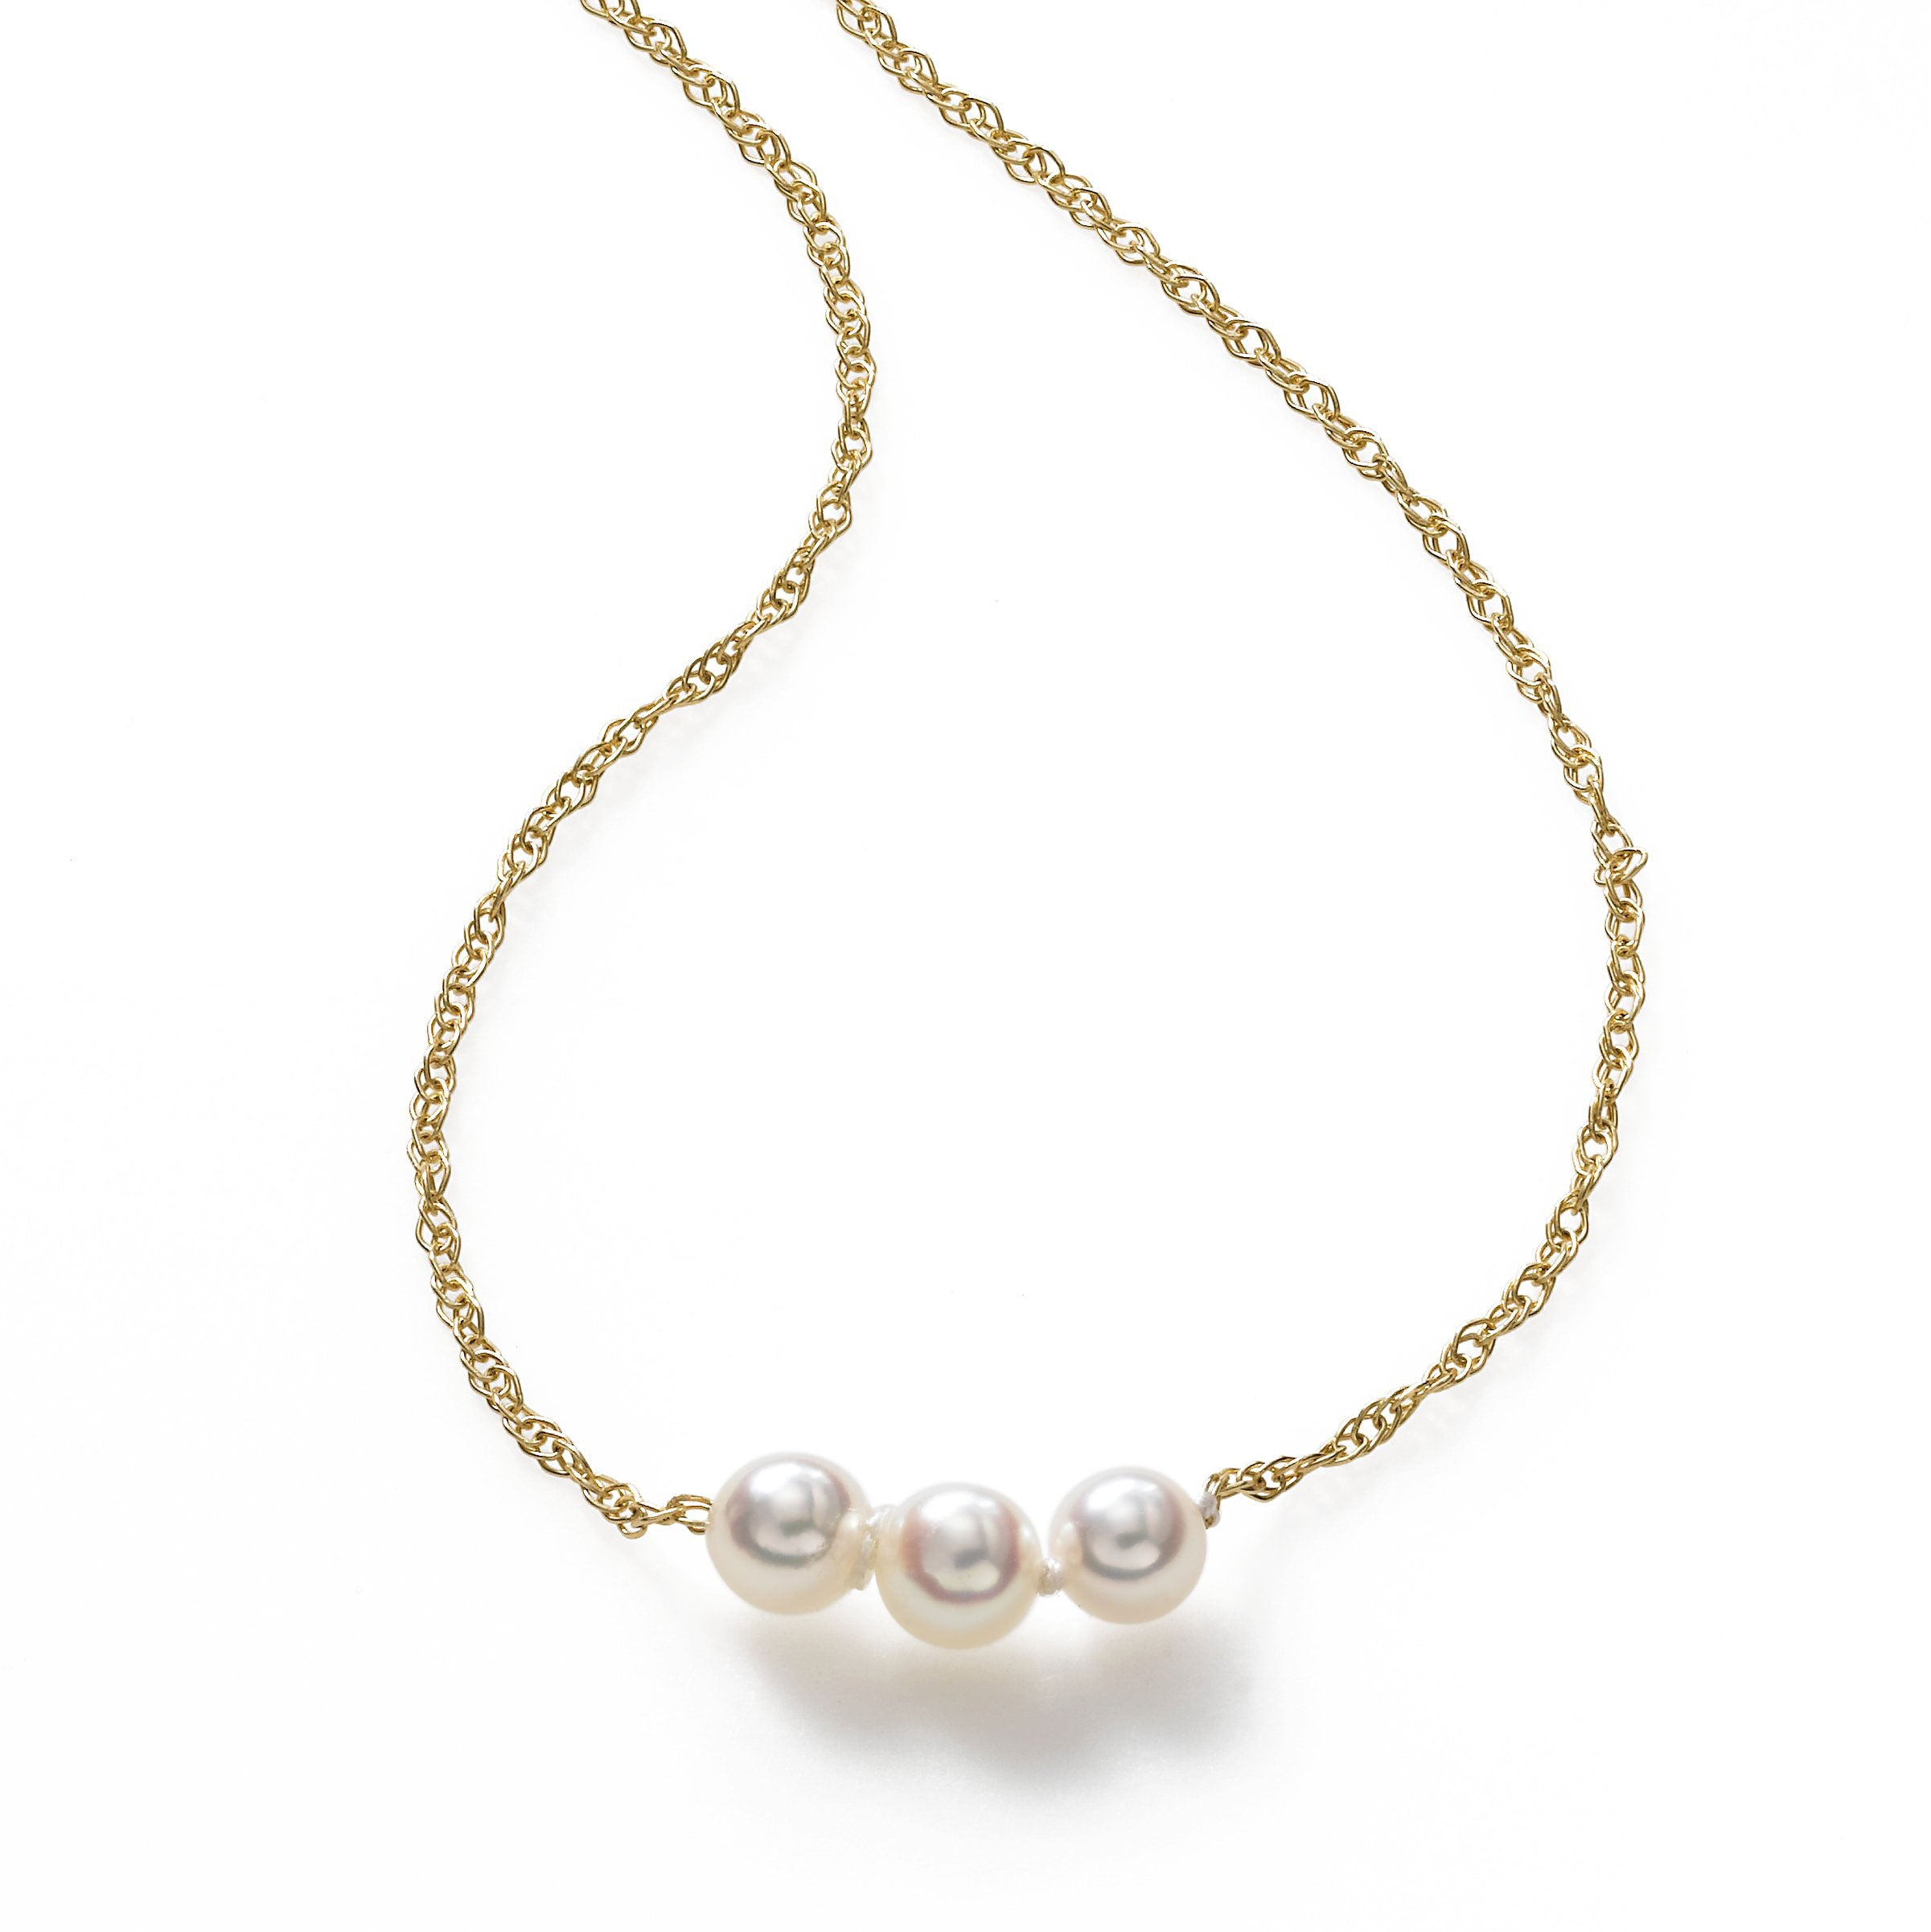 Pearl By Pearl Starter Necklace, 3 Akoya 4MM Pearls, 16 inch Length, 14K Yellow Gold